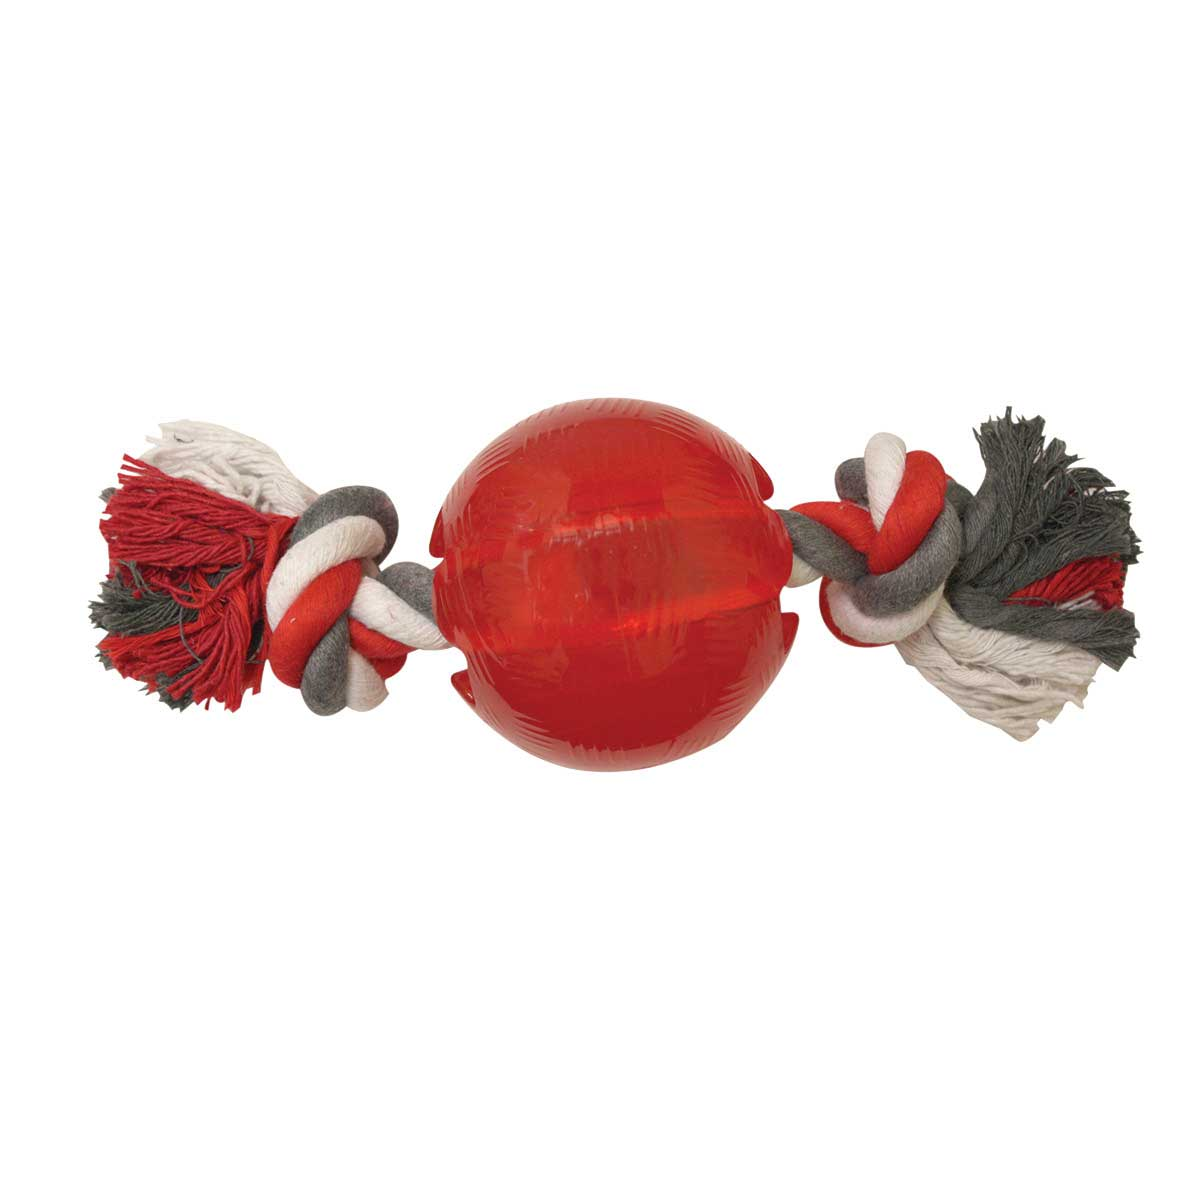 Small 3.25 inch Play Strong Ball With Rope for Dogs